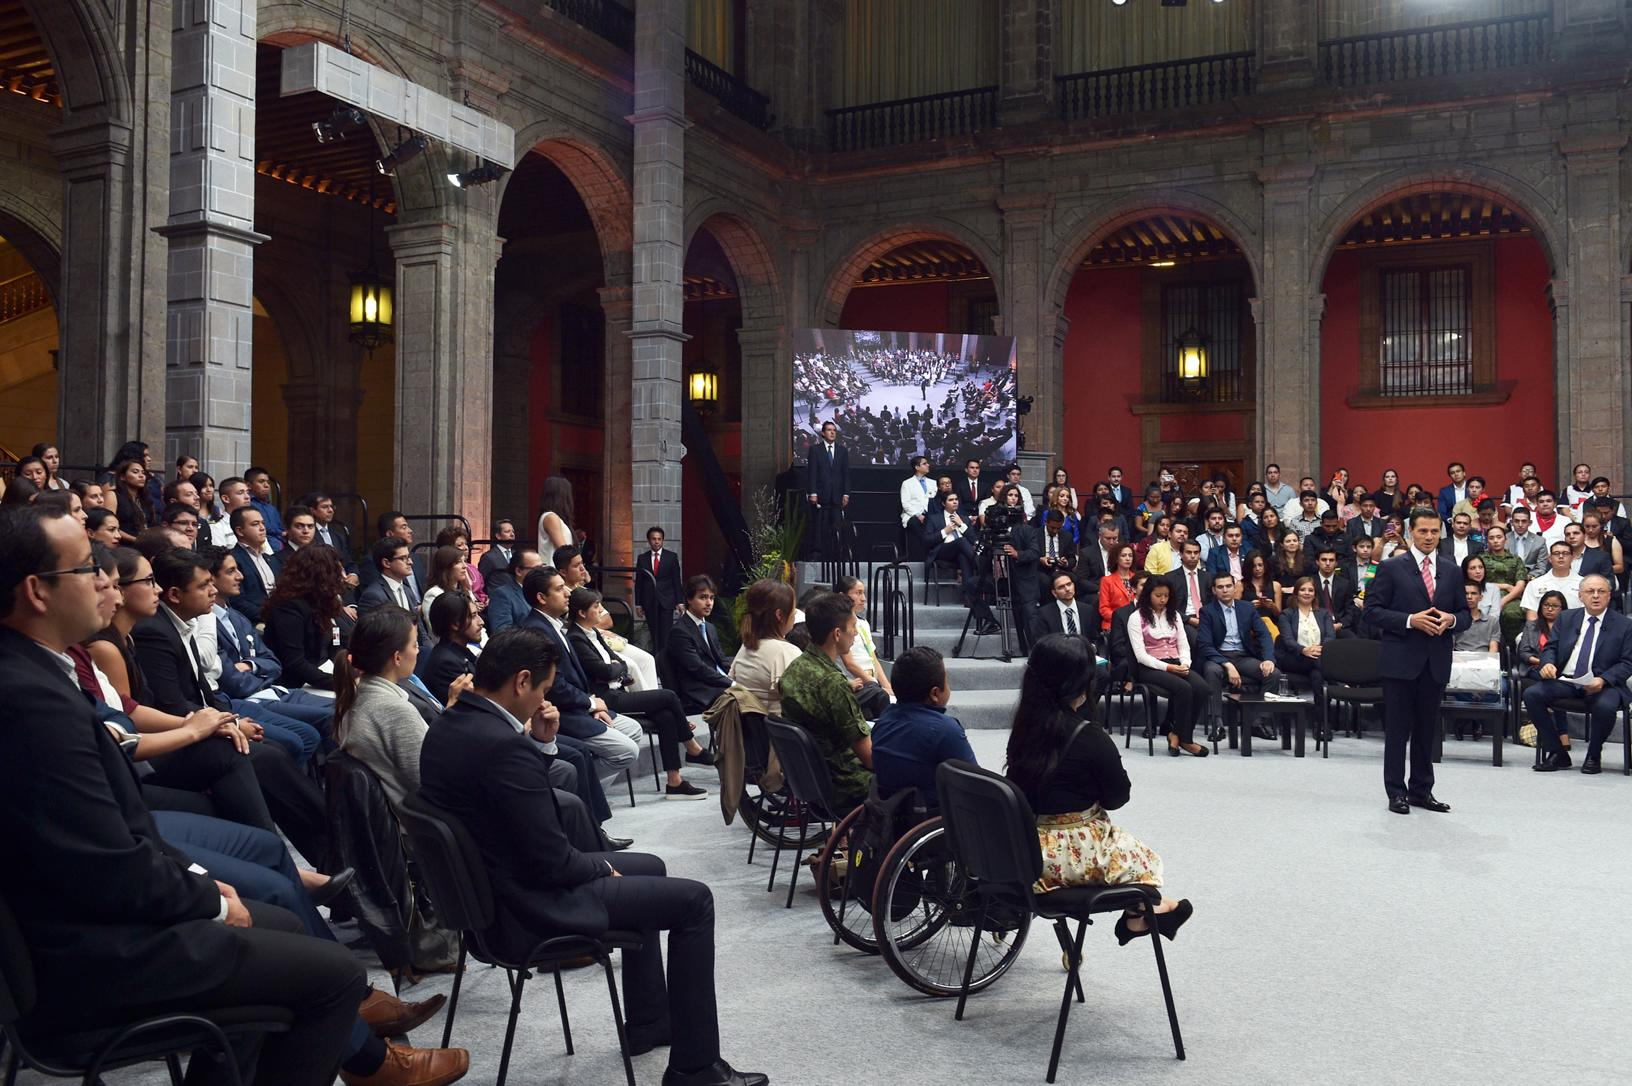 The president answered questions and criticisms from young people from all over the country in an unprecedented democratic exercise by the Mexican president's office.